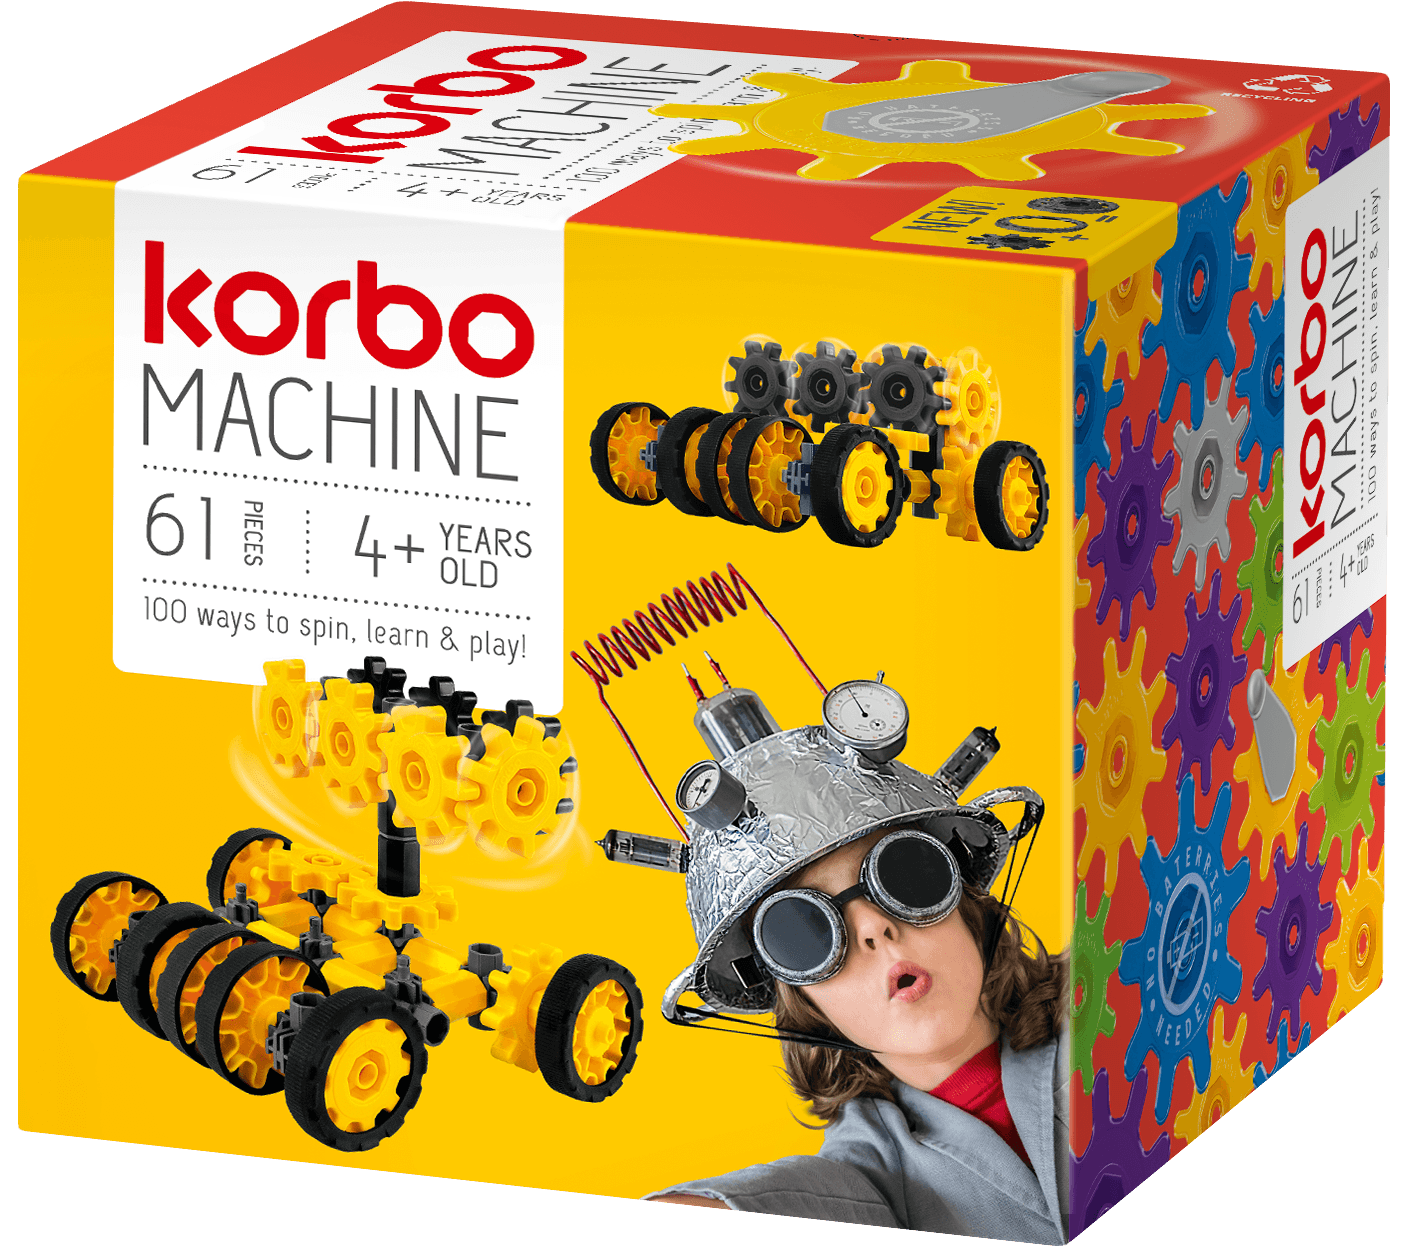 Korbo Machine 61